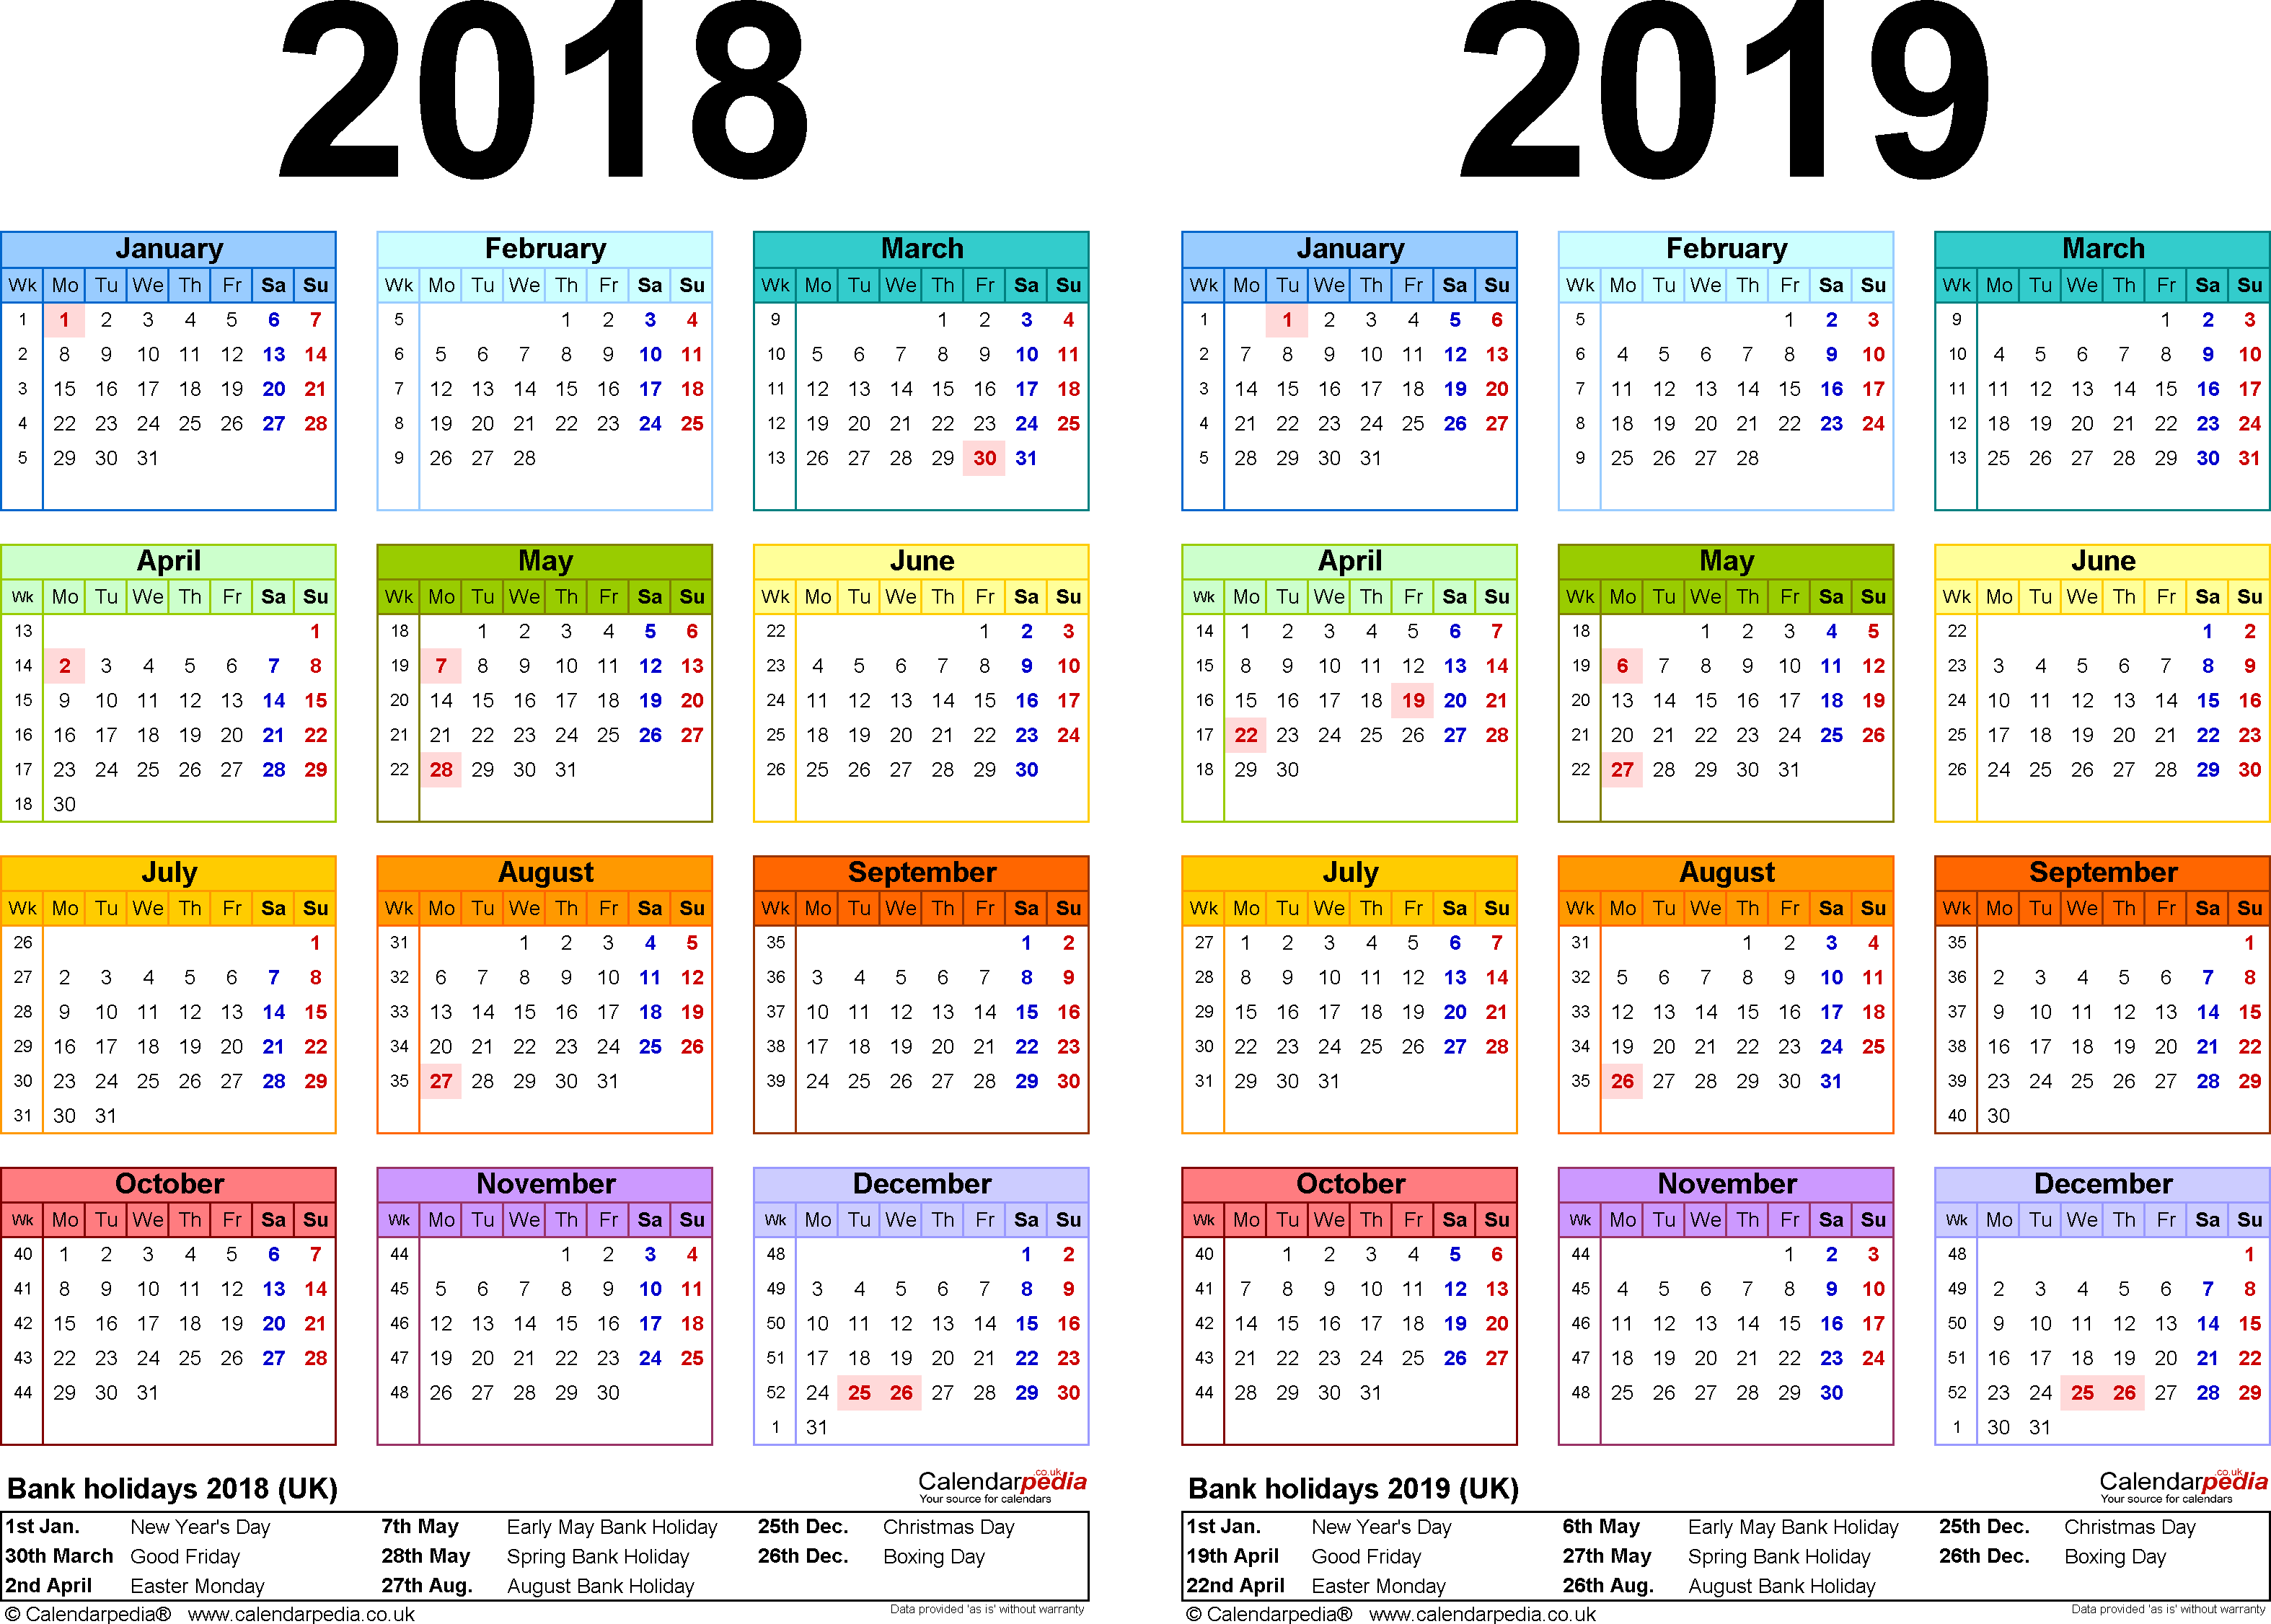 Download Template 2: PDF template for two year calendar 2018/2019 in colour (landscape orientation, 1 page, A4)